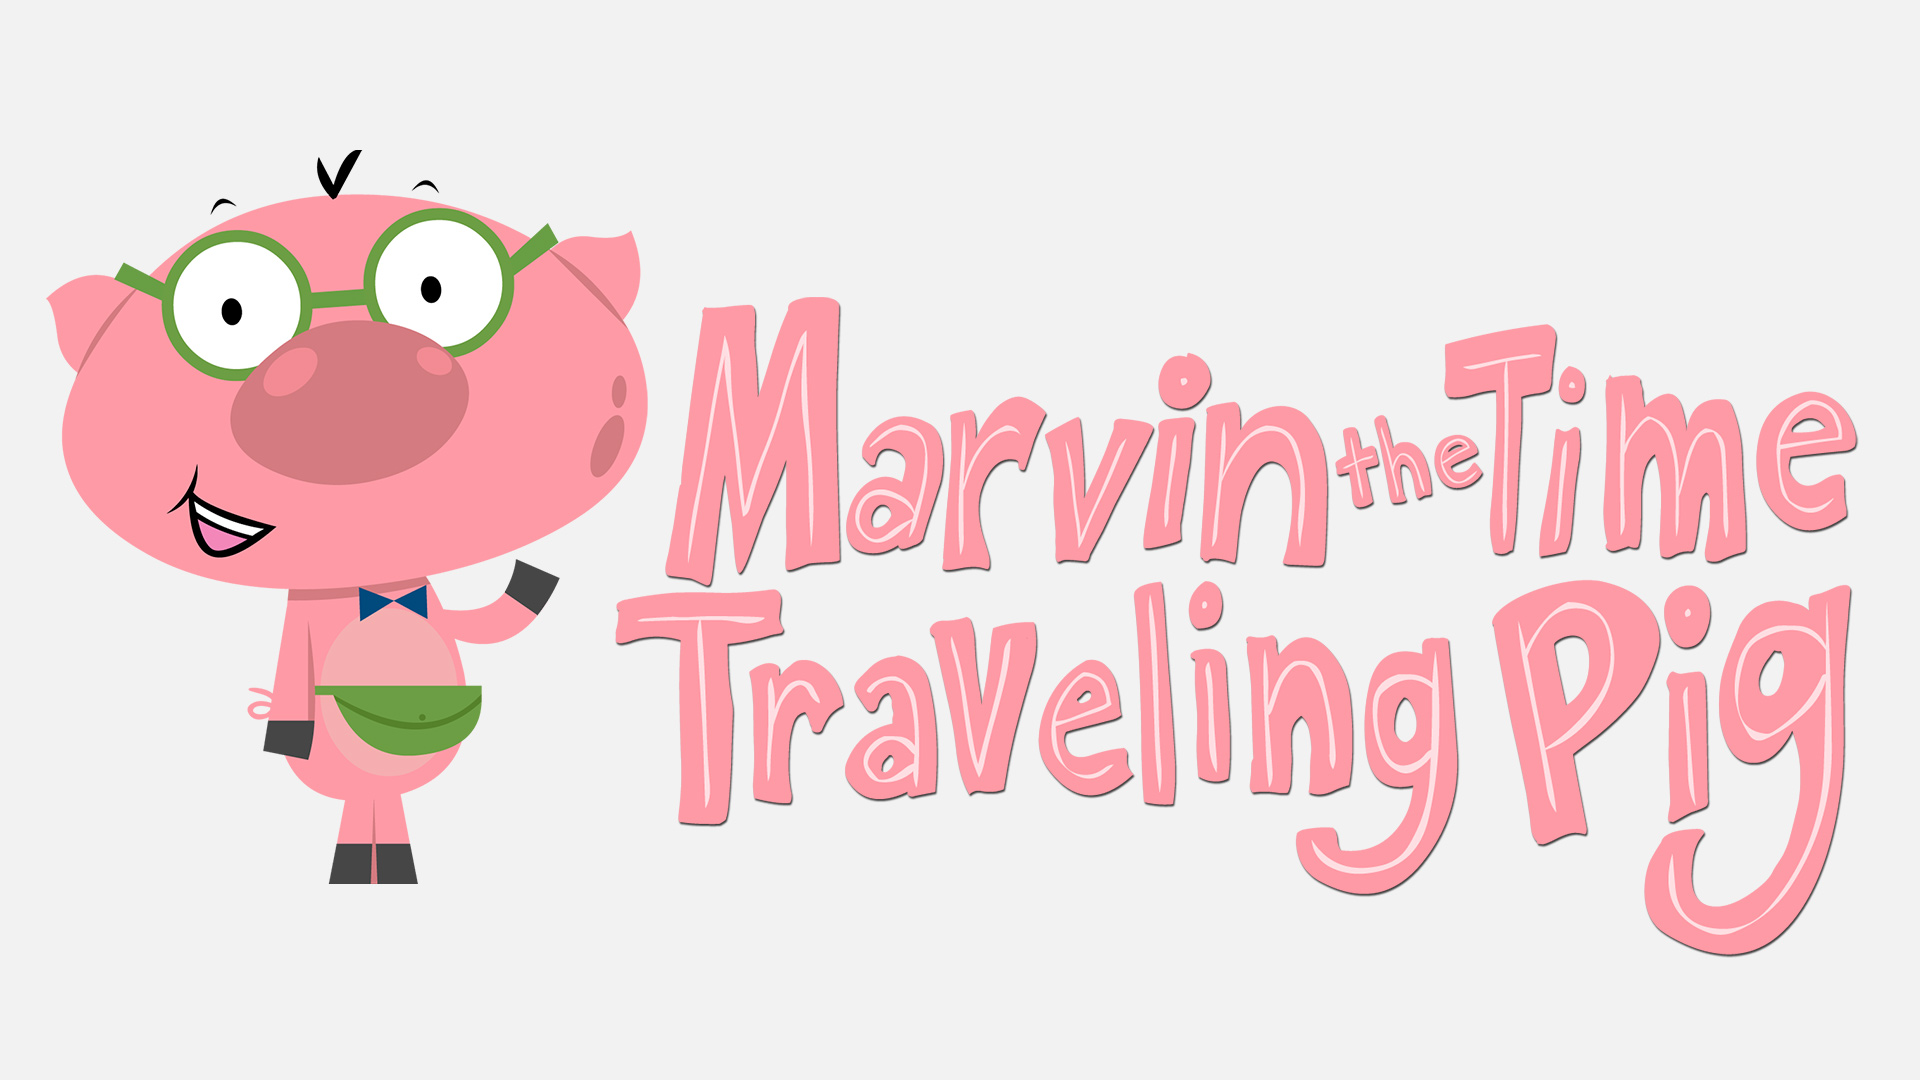 Marvin the time traveling pig